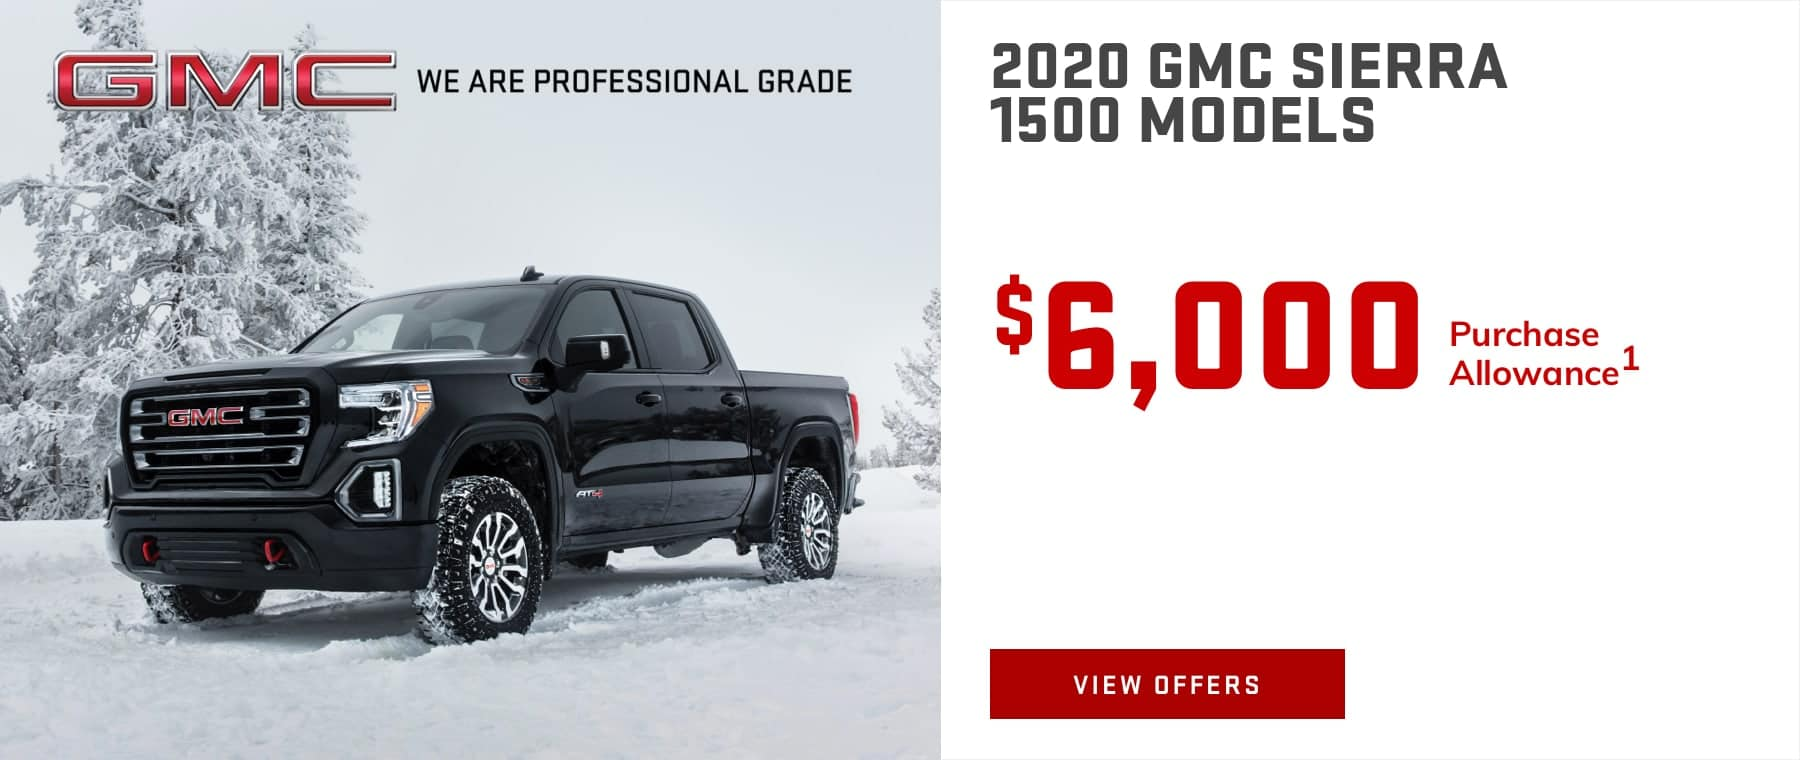 MOST 2020 GMC SIERRA 1500 CREW CAB MODELS - $6,000 Purchase Allowance1